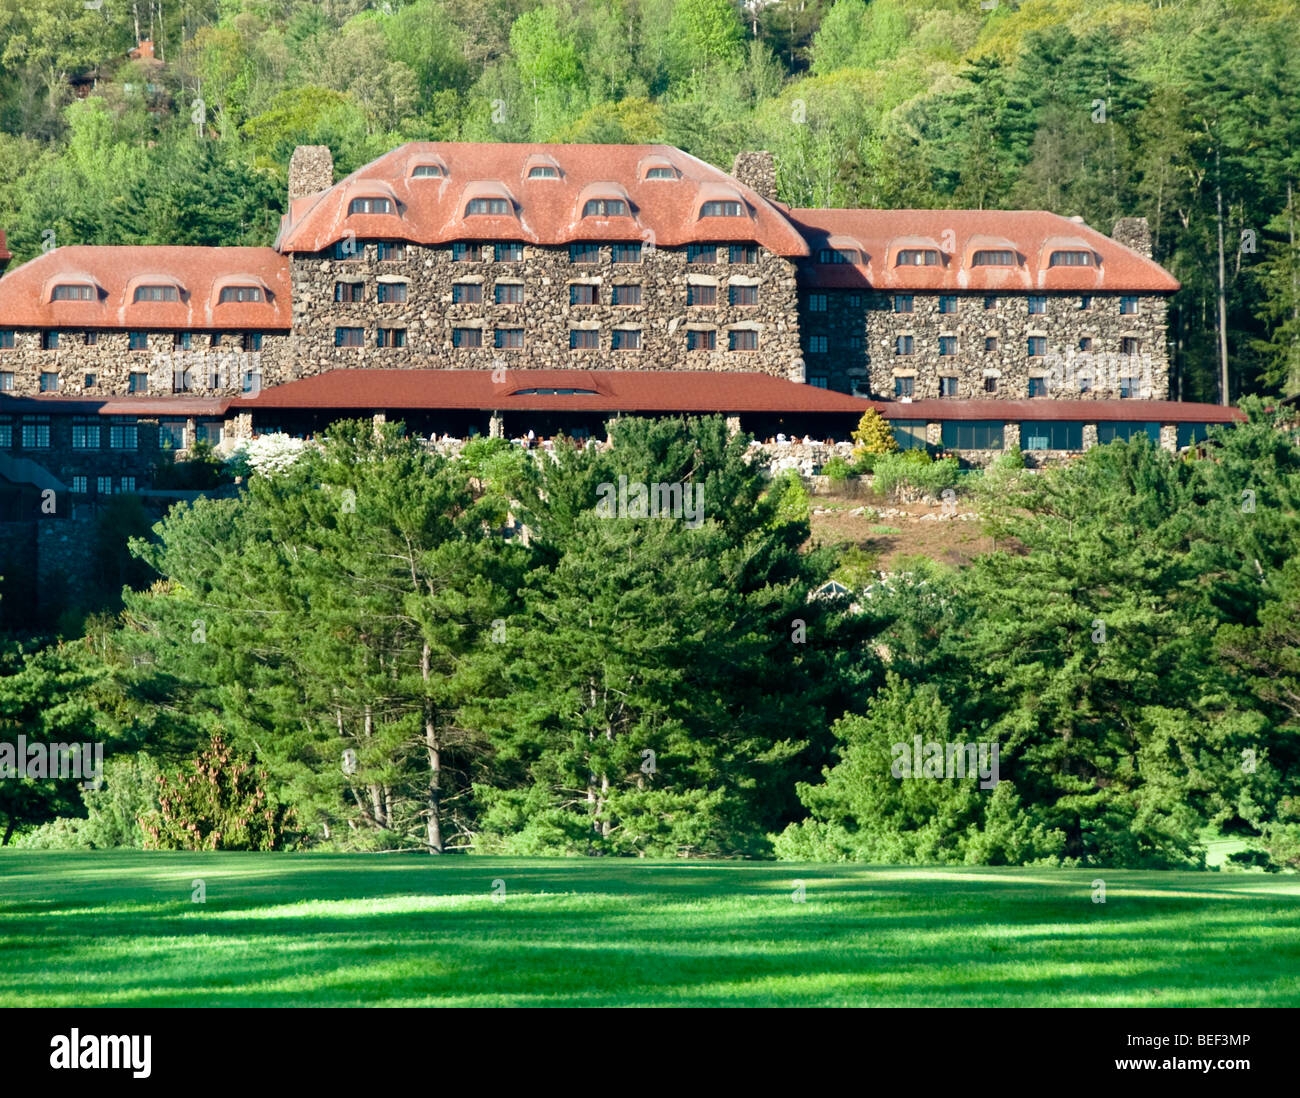 Exterior of the Grove Park Inn, Asheville, North Carolina, USA - Stock Image